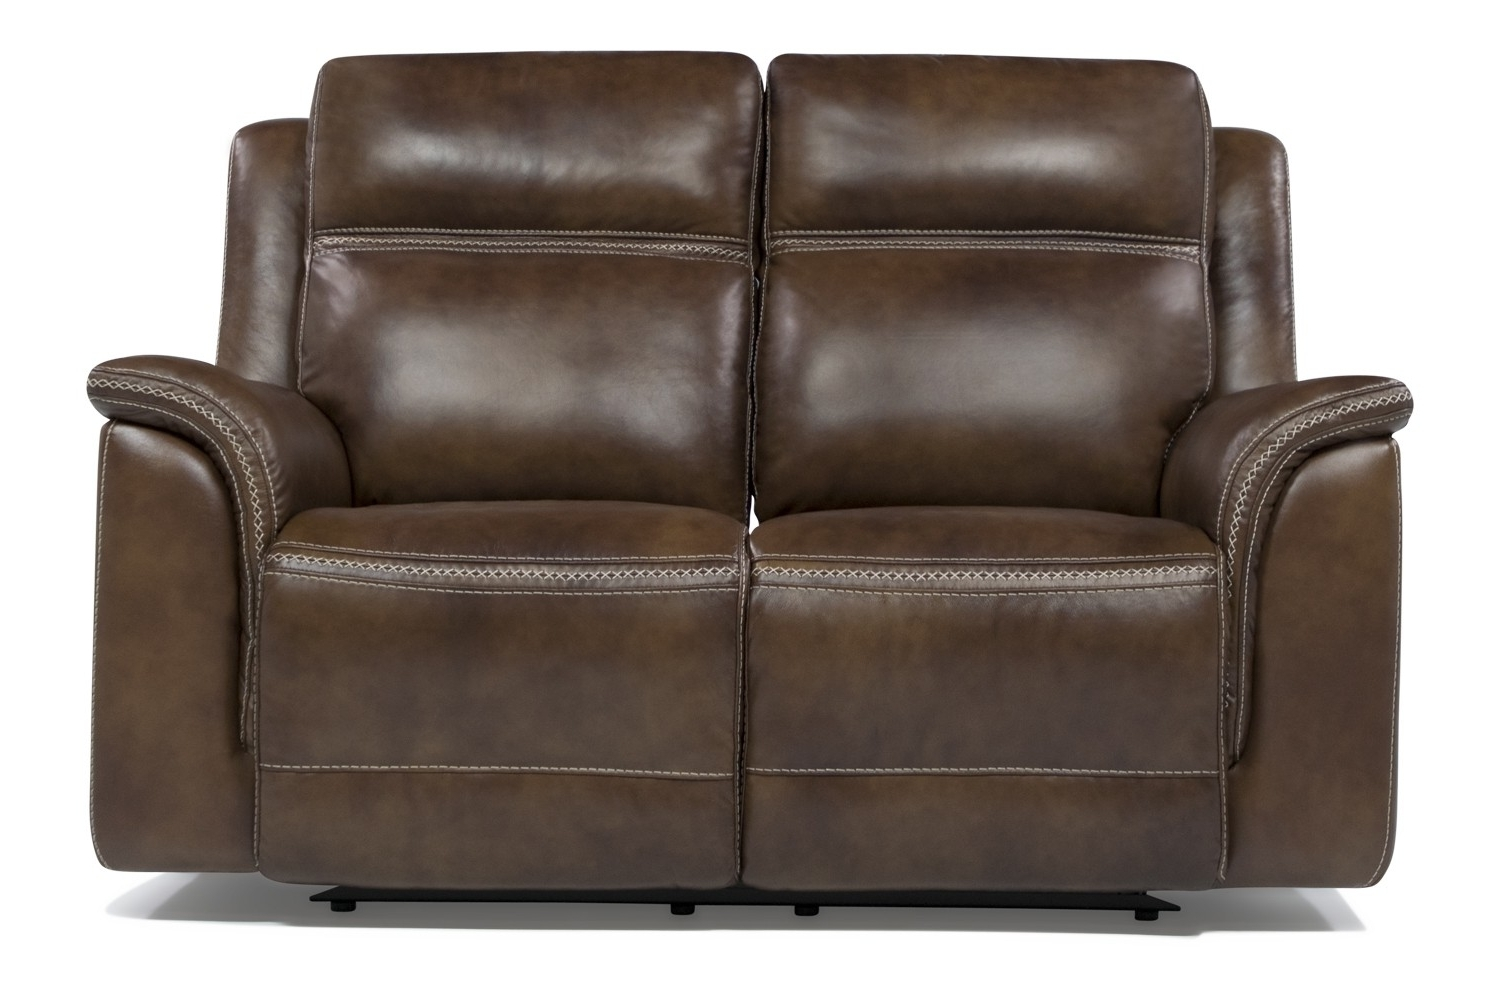 Everett Wa Sectional Sofas With Regard To Well Known Living Room Furniture (View 6 of 15)